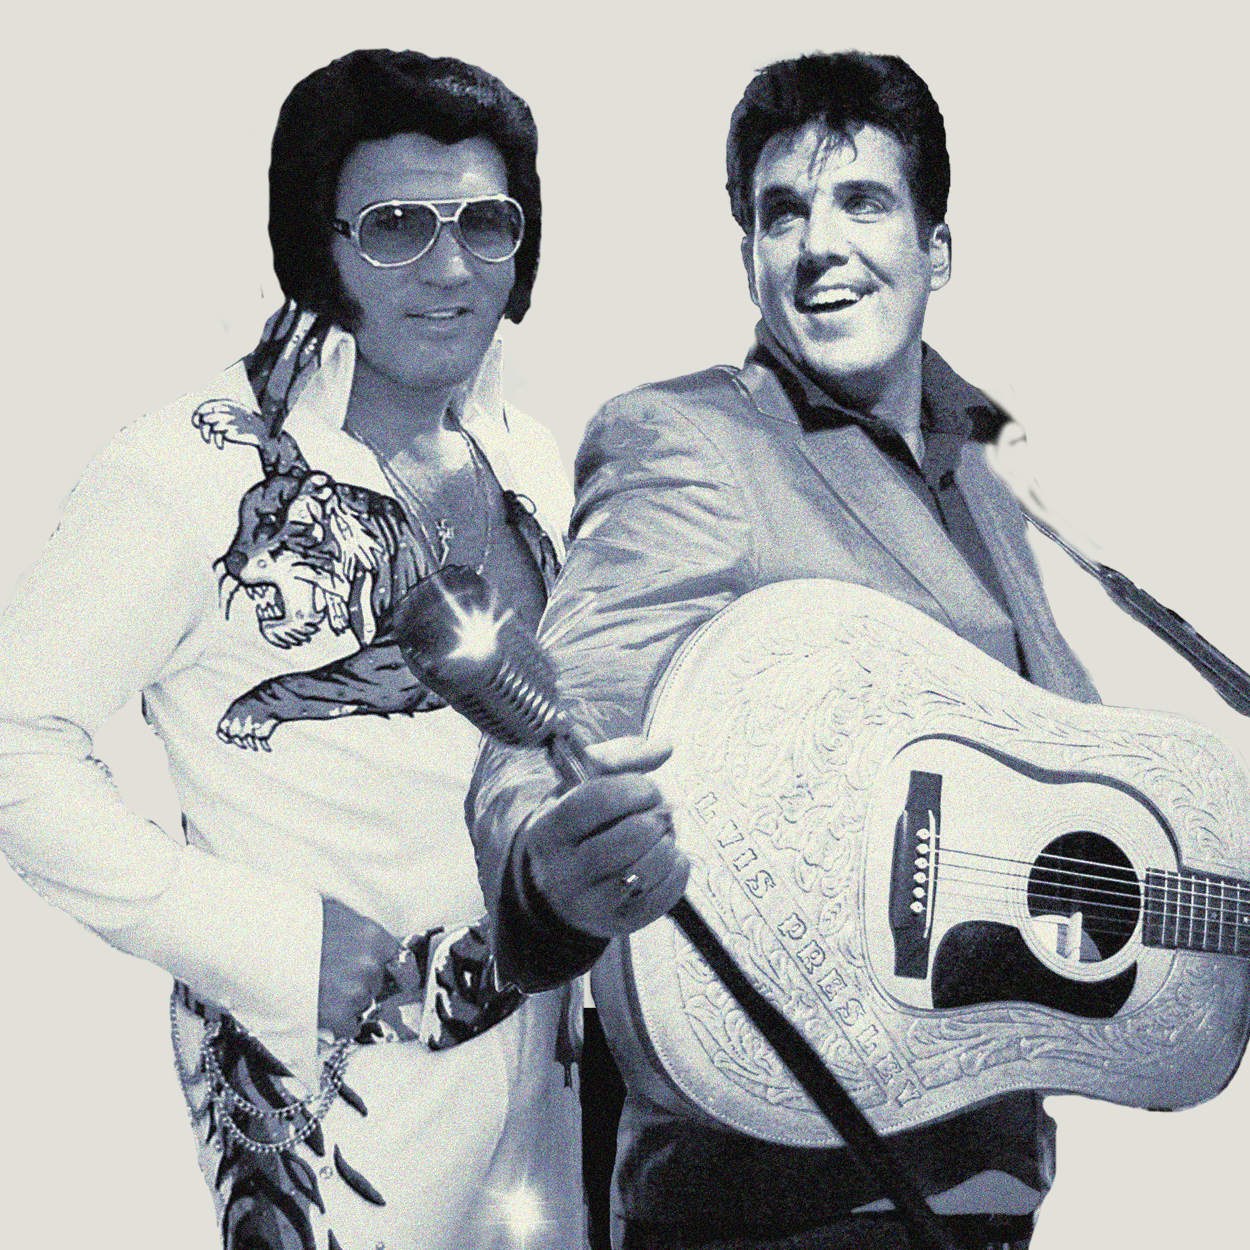 Elvis Birthday Bash starring Mike Albert, Scot Bruce and the Big E Band